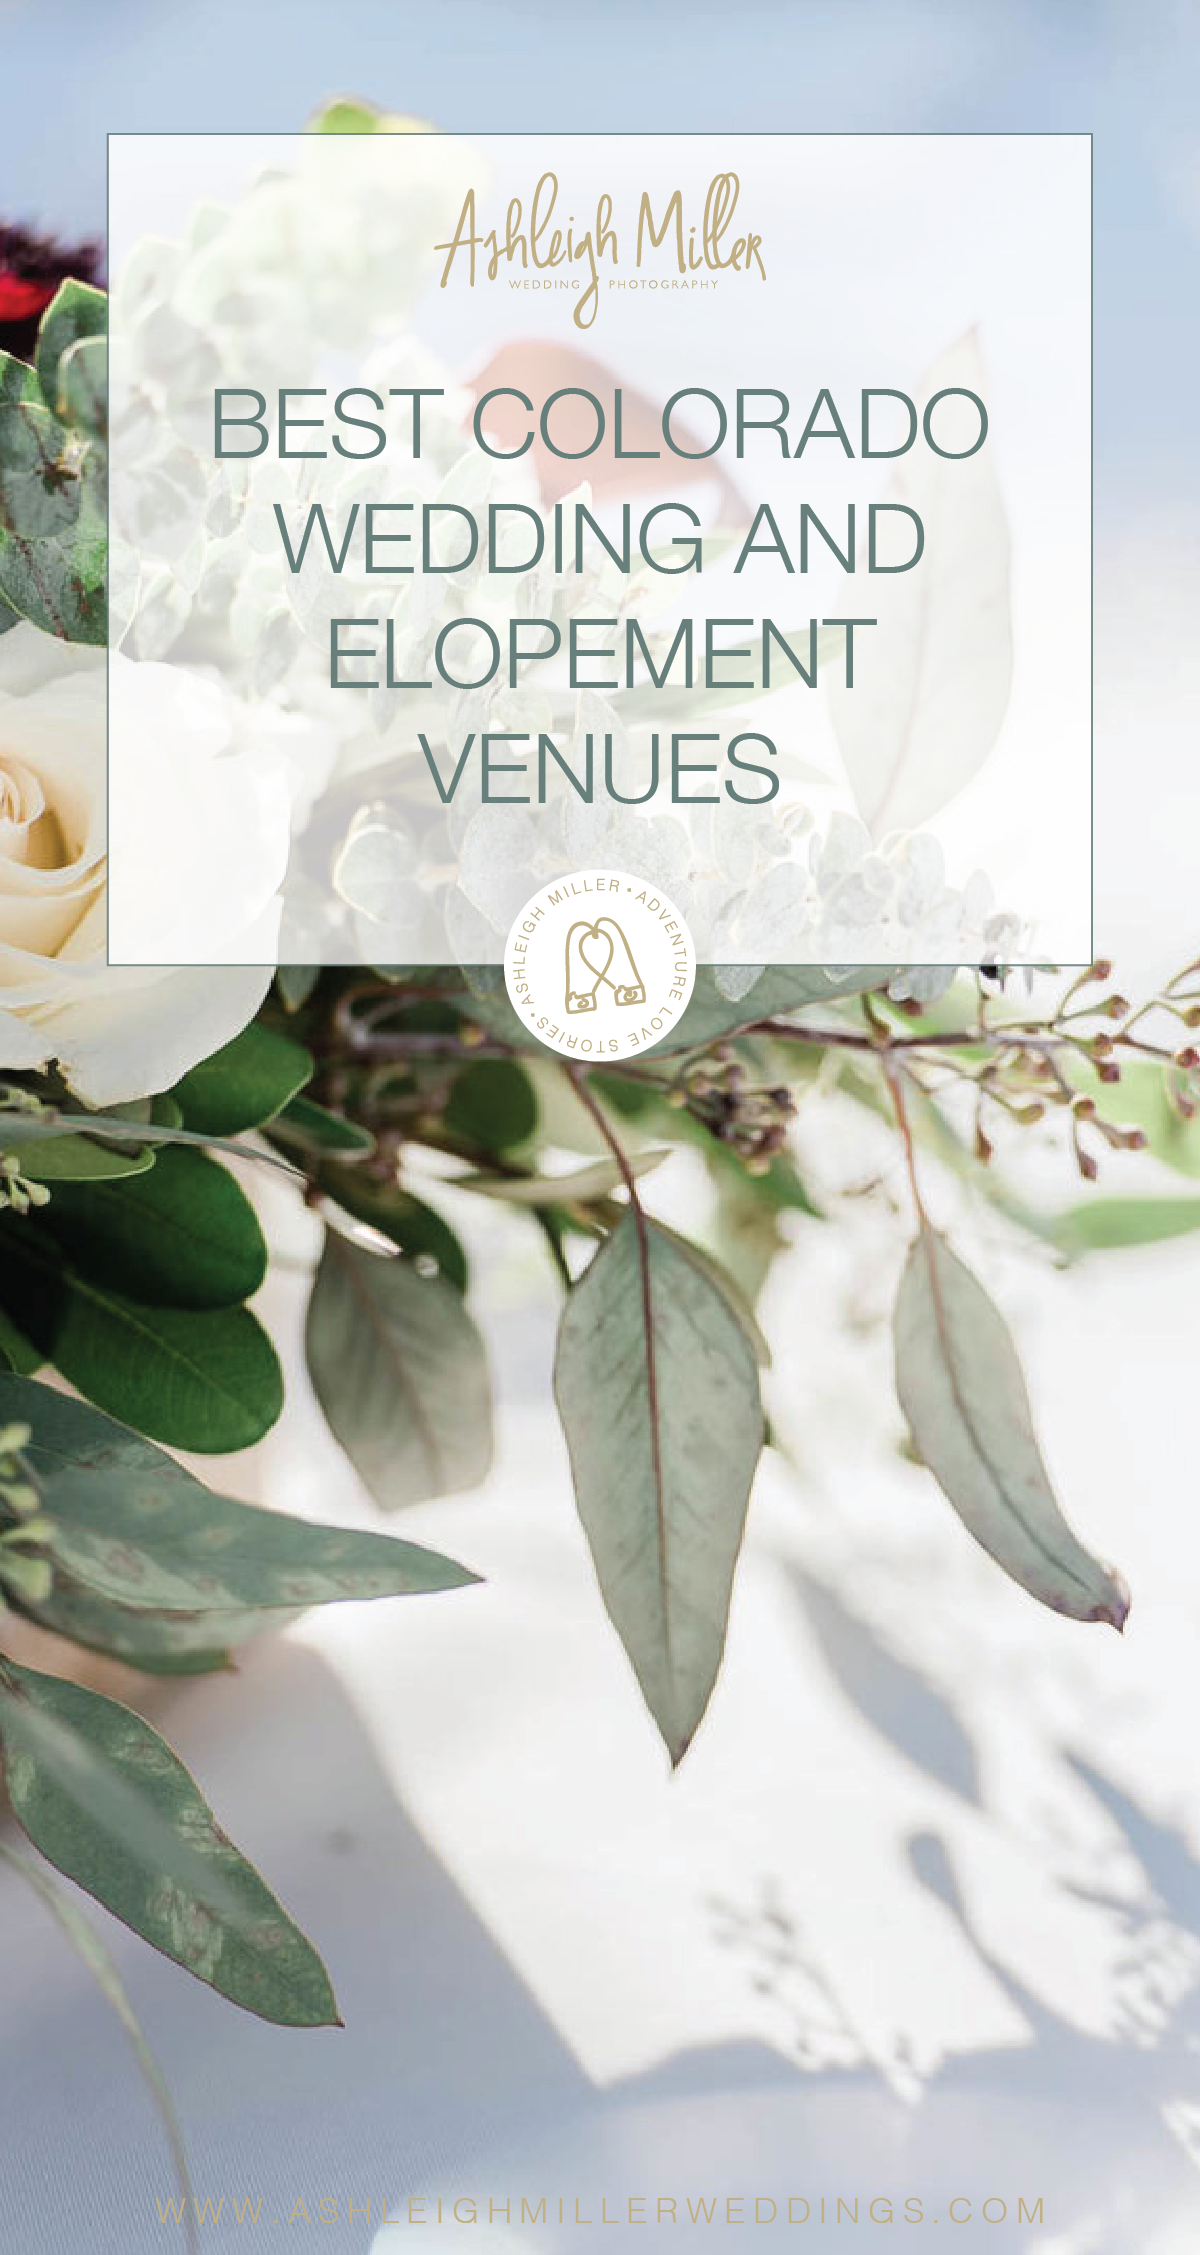 Best-Colorado-Wedding-and-Elopement-Venues-01.png